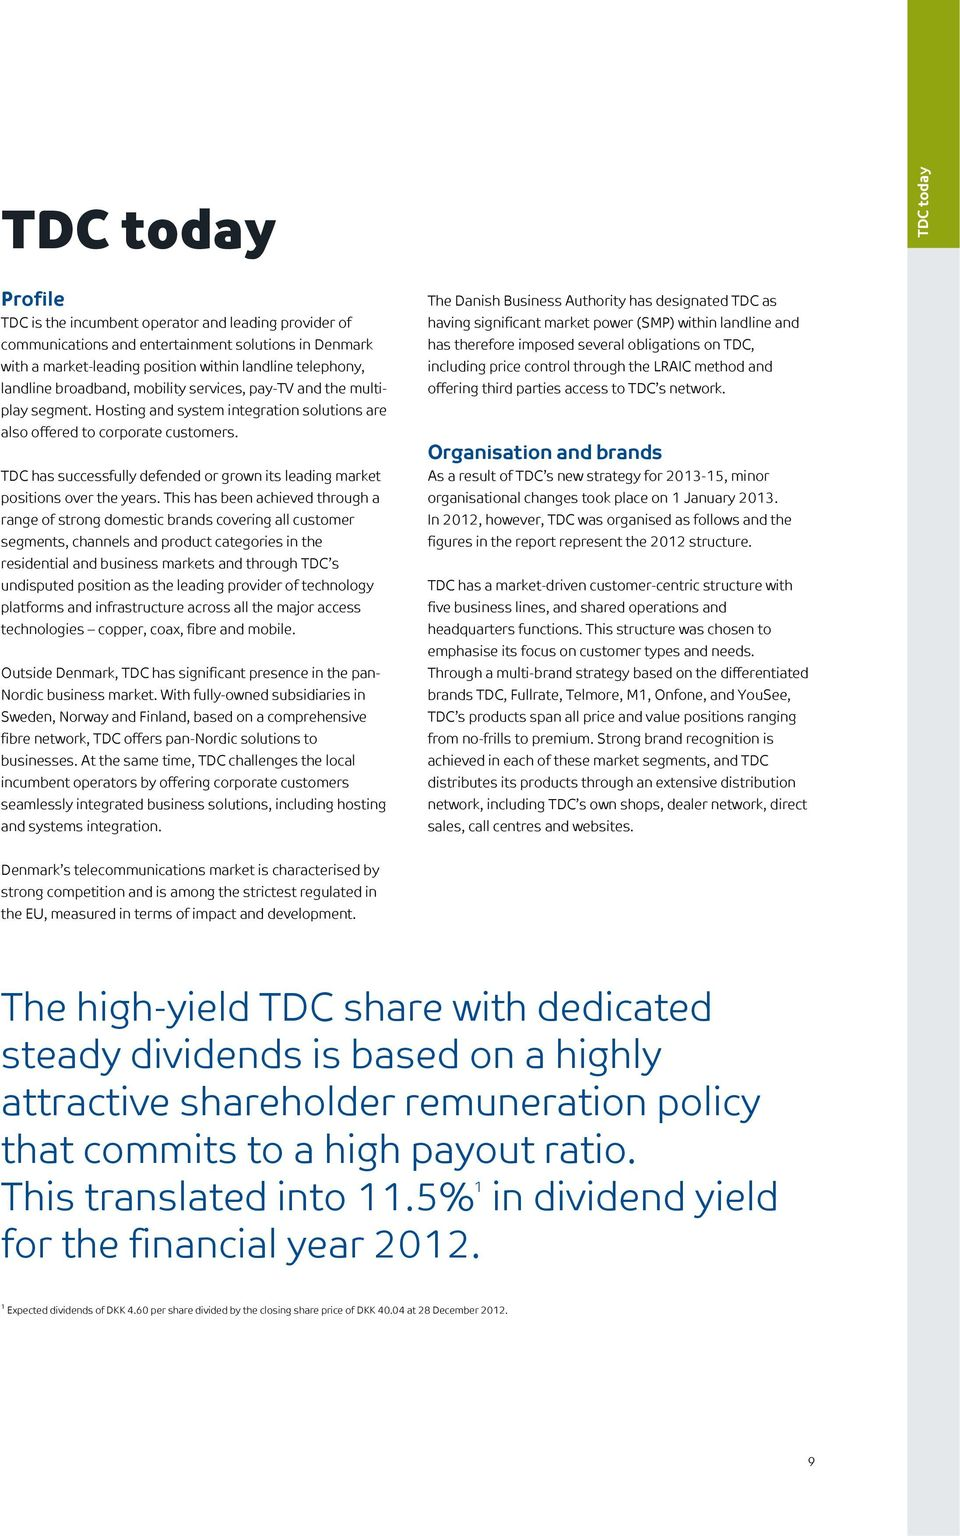 TDC has successfully defended or grown its leading market positions over the years.